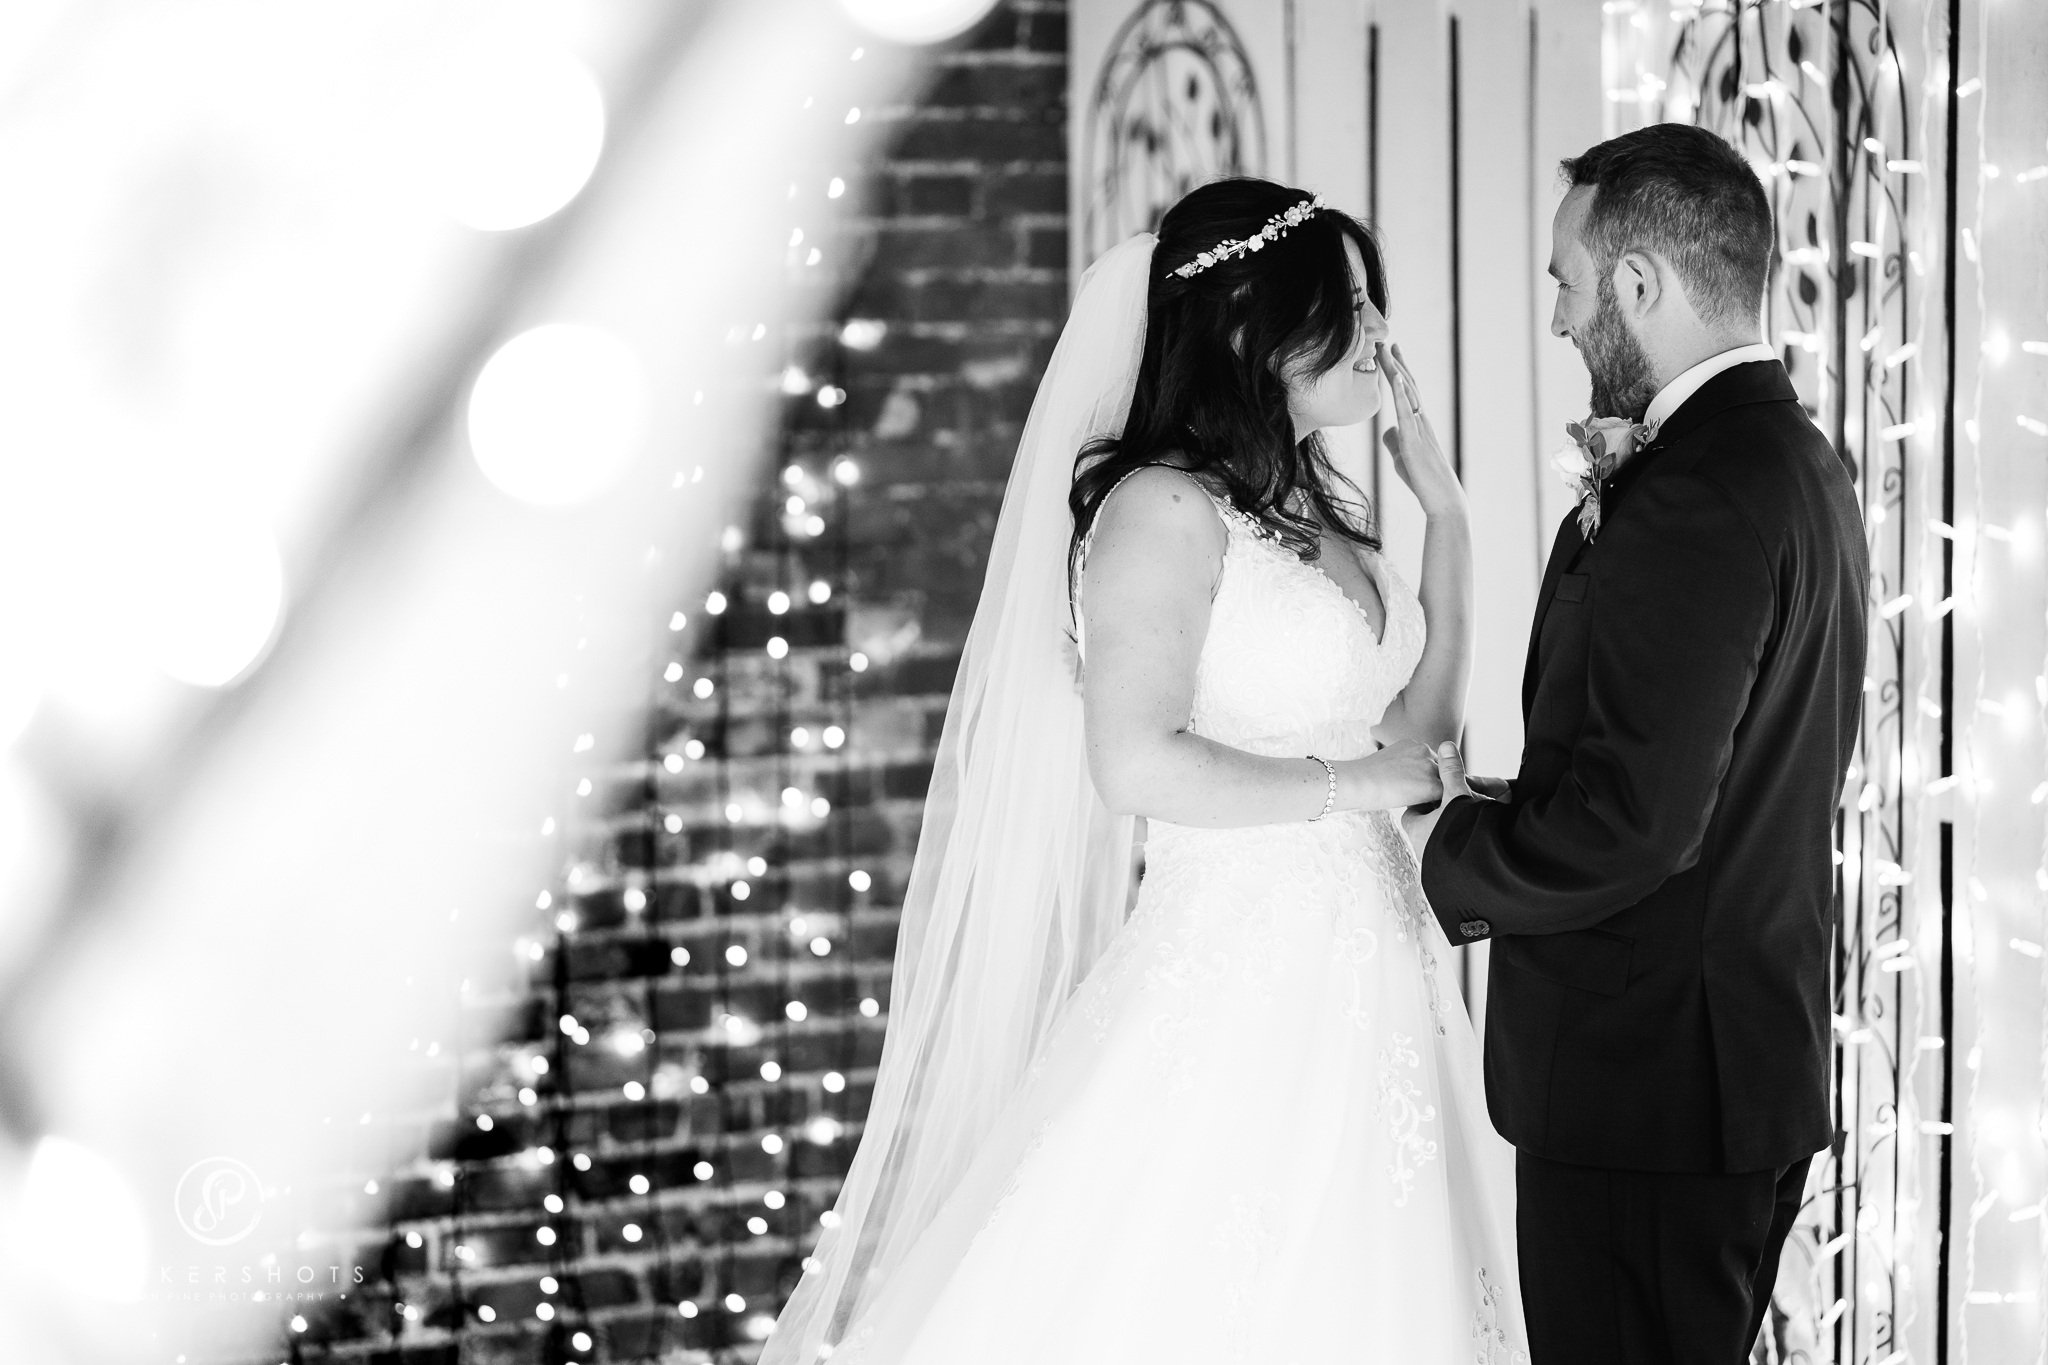 wedding photograph at Winters Barns by recommended photographer, Parkershots